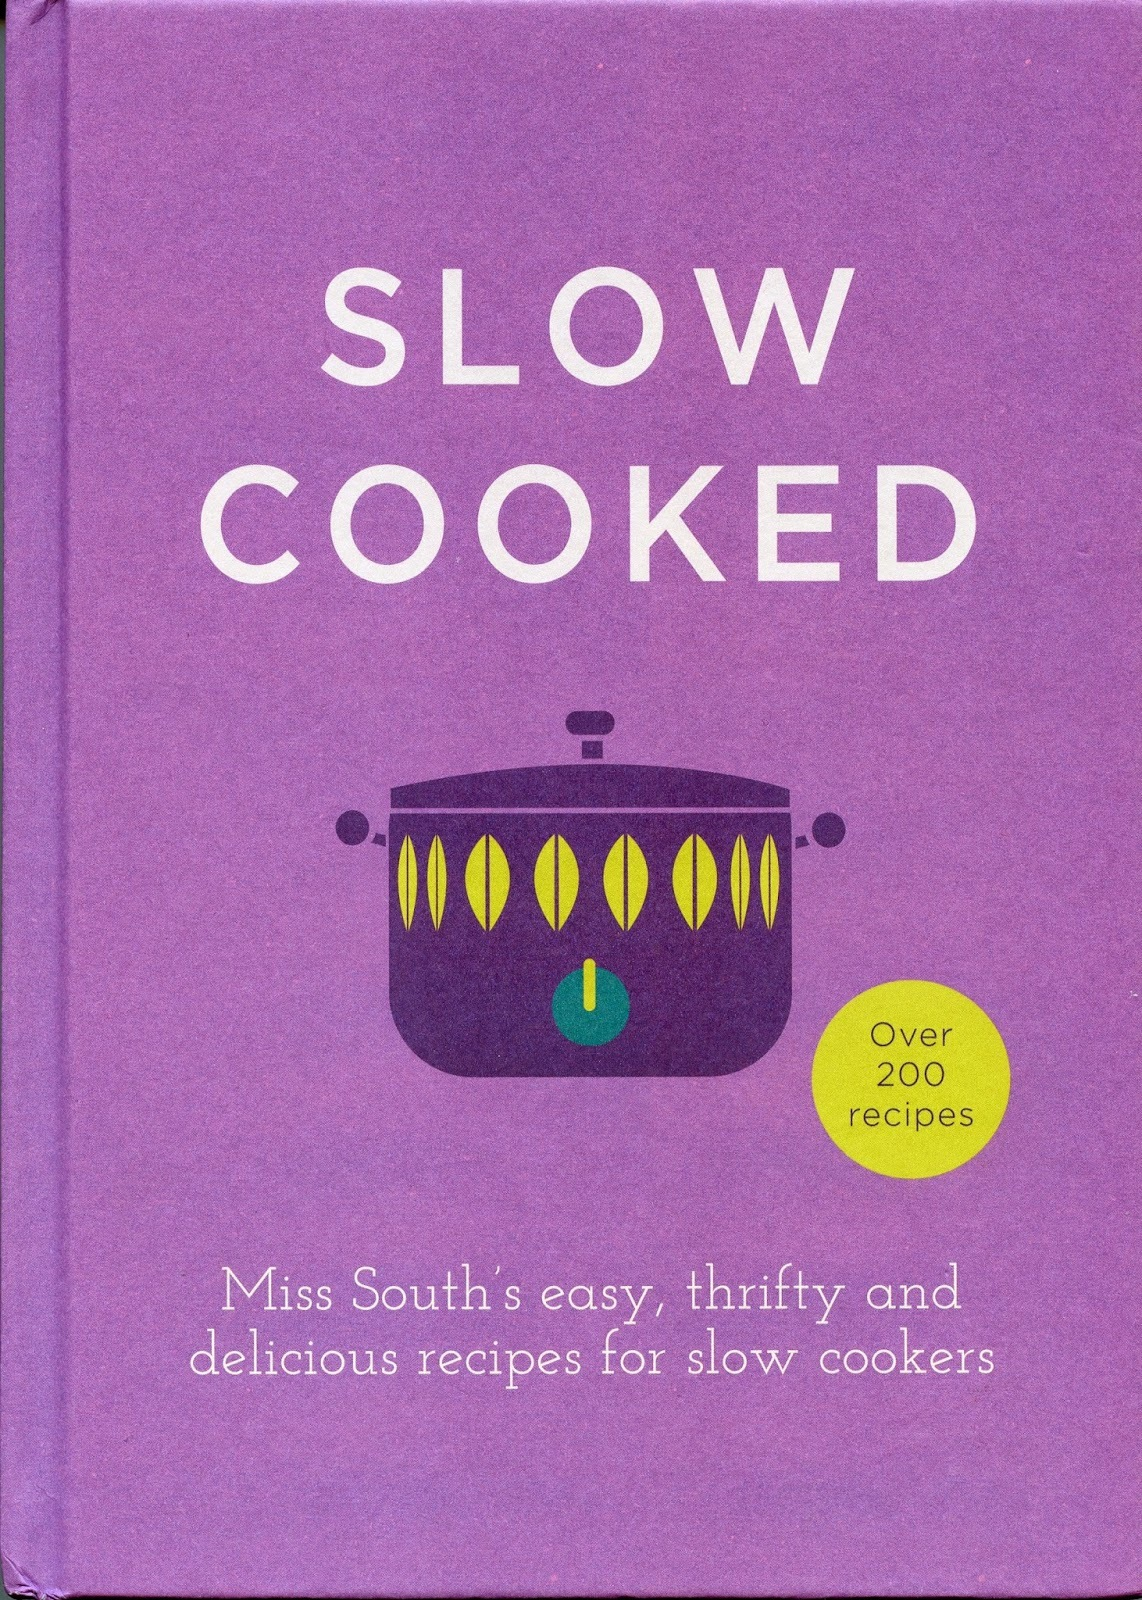 St Andrew's Day Slow Cooked Challenge and a Giveaway